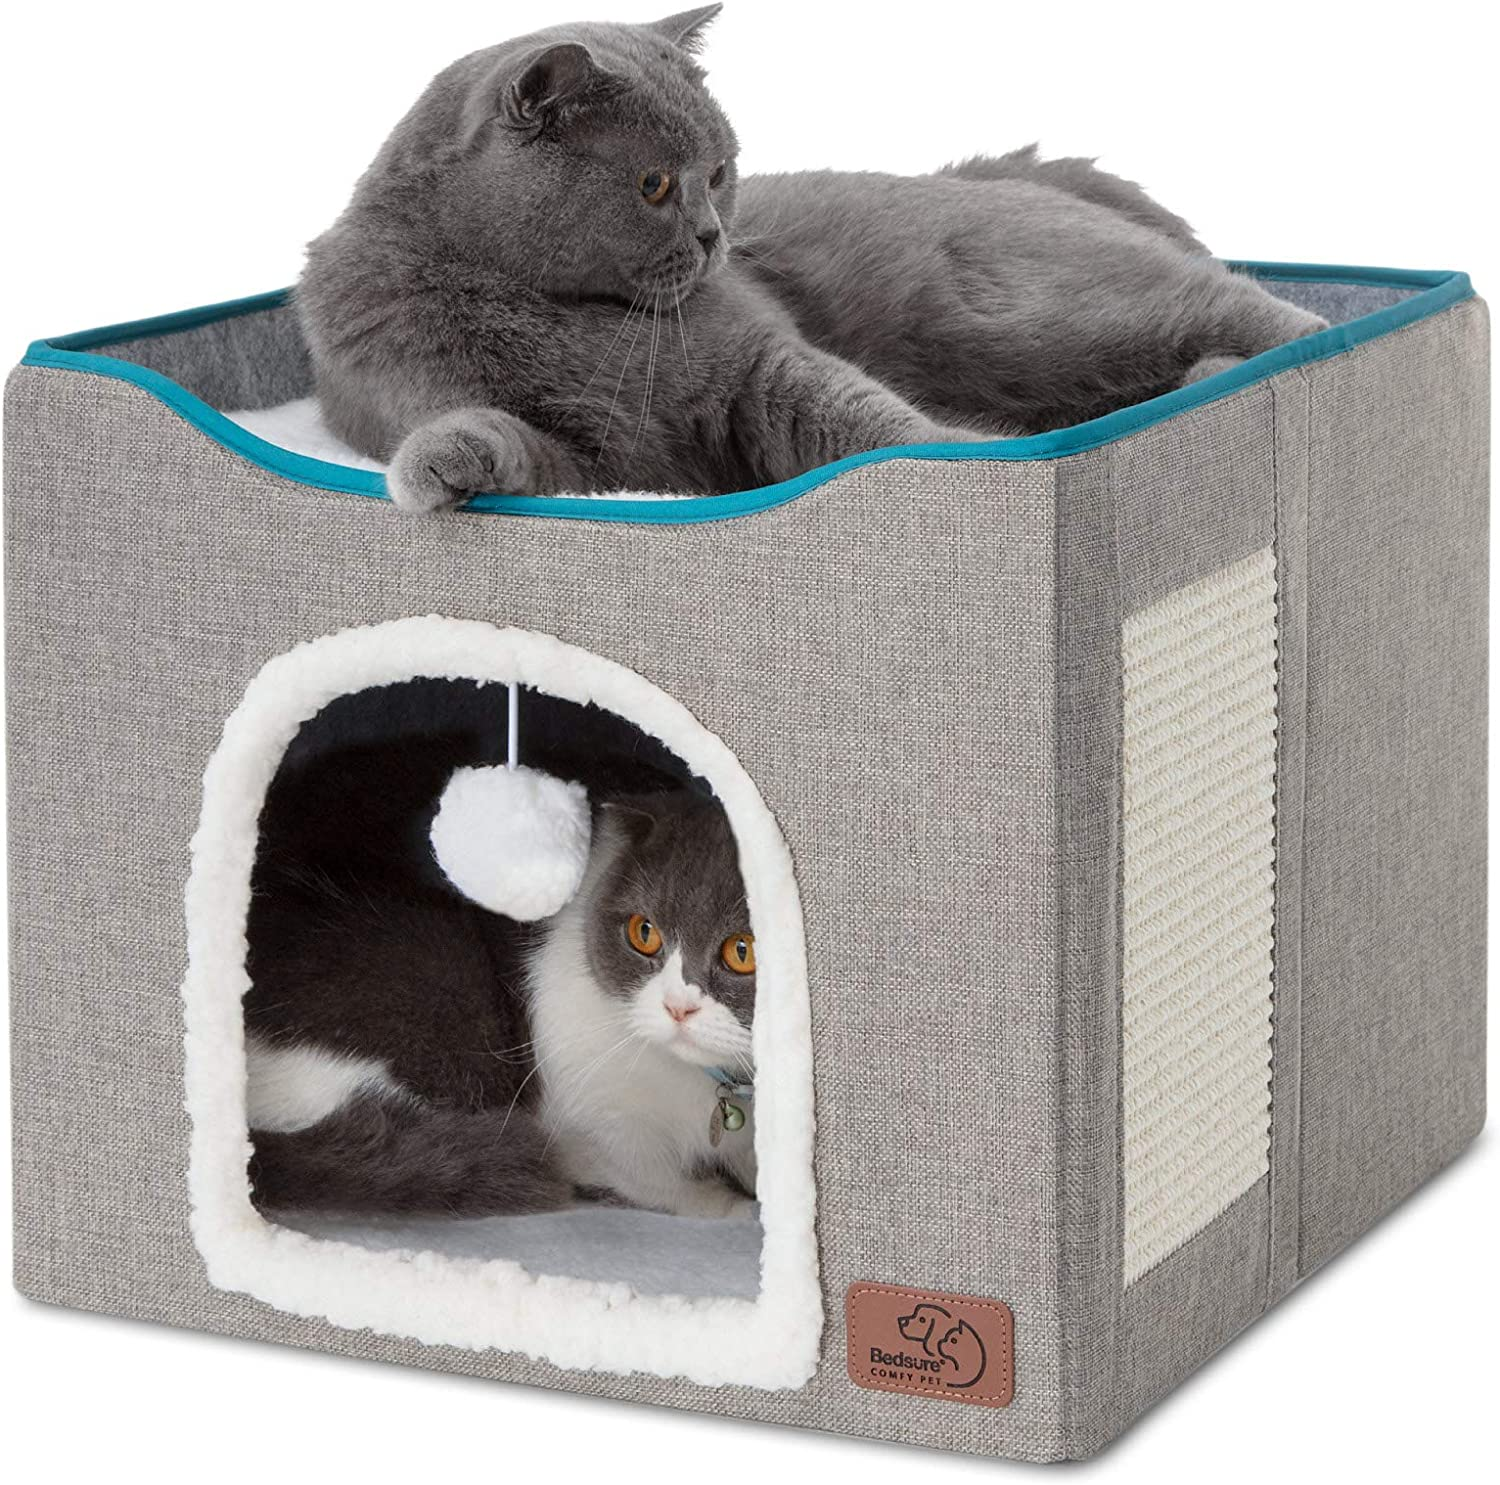 Bedsure Cat Cube, Foldable Cat Cubes for Indoor Cats, Cat House Indoor - Large Cat Bed with Fluffy Ball Hanging and Scratch Pad, 16.5x16.5x14 inches, Grey